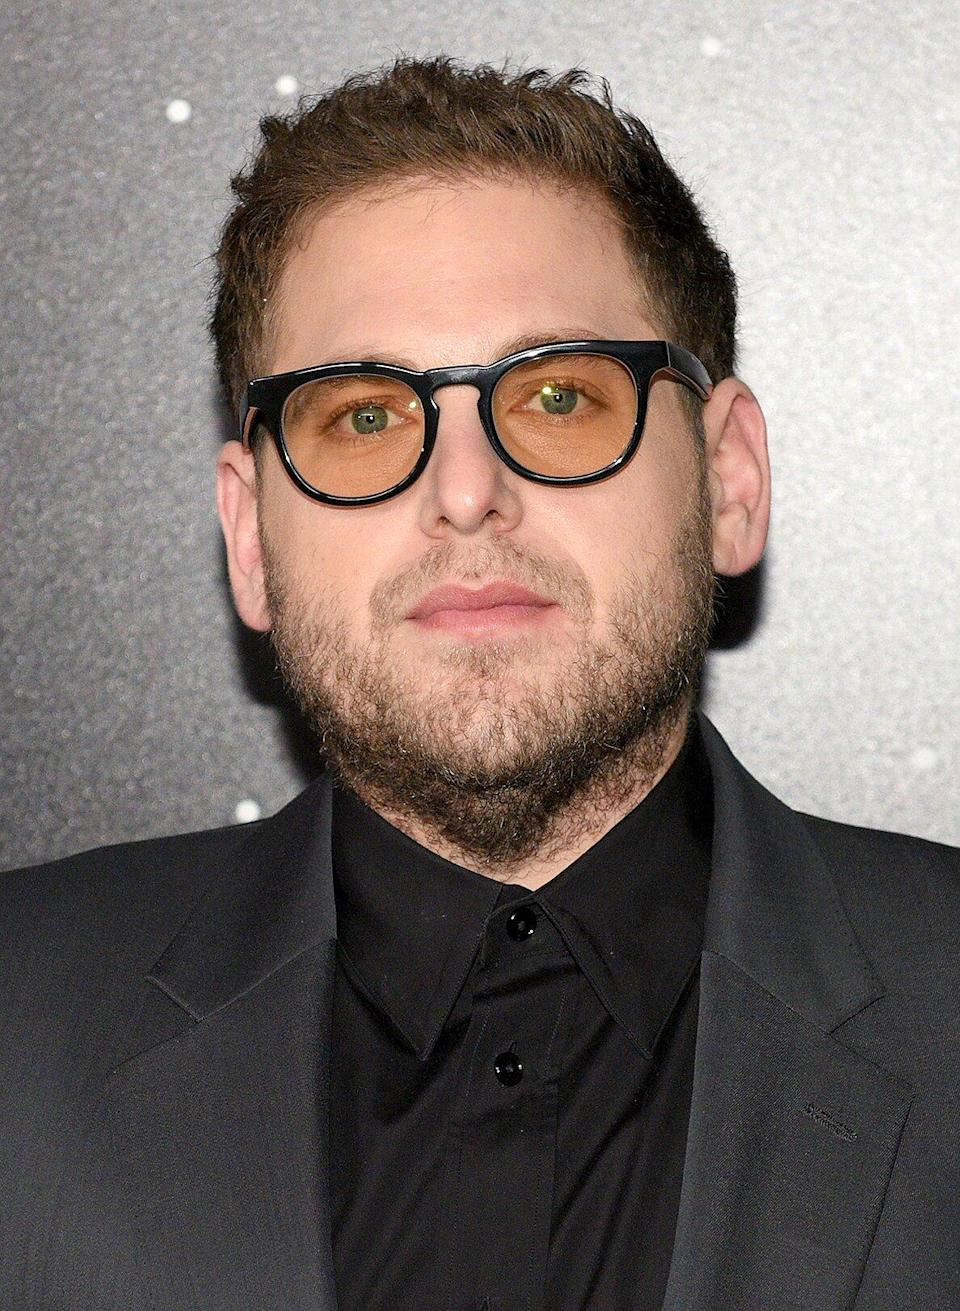 NEW YORK, NY - NOVEMBER 19: Jonah Hill attends The Museum Of Modern Art Film Benefit Presented By CHANEL: A Tribute To Martin Scorsese on November 19, 2018